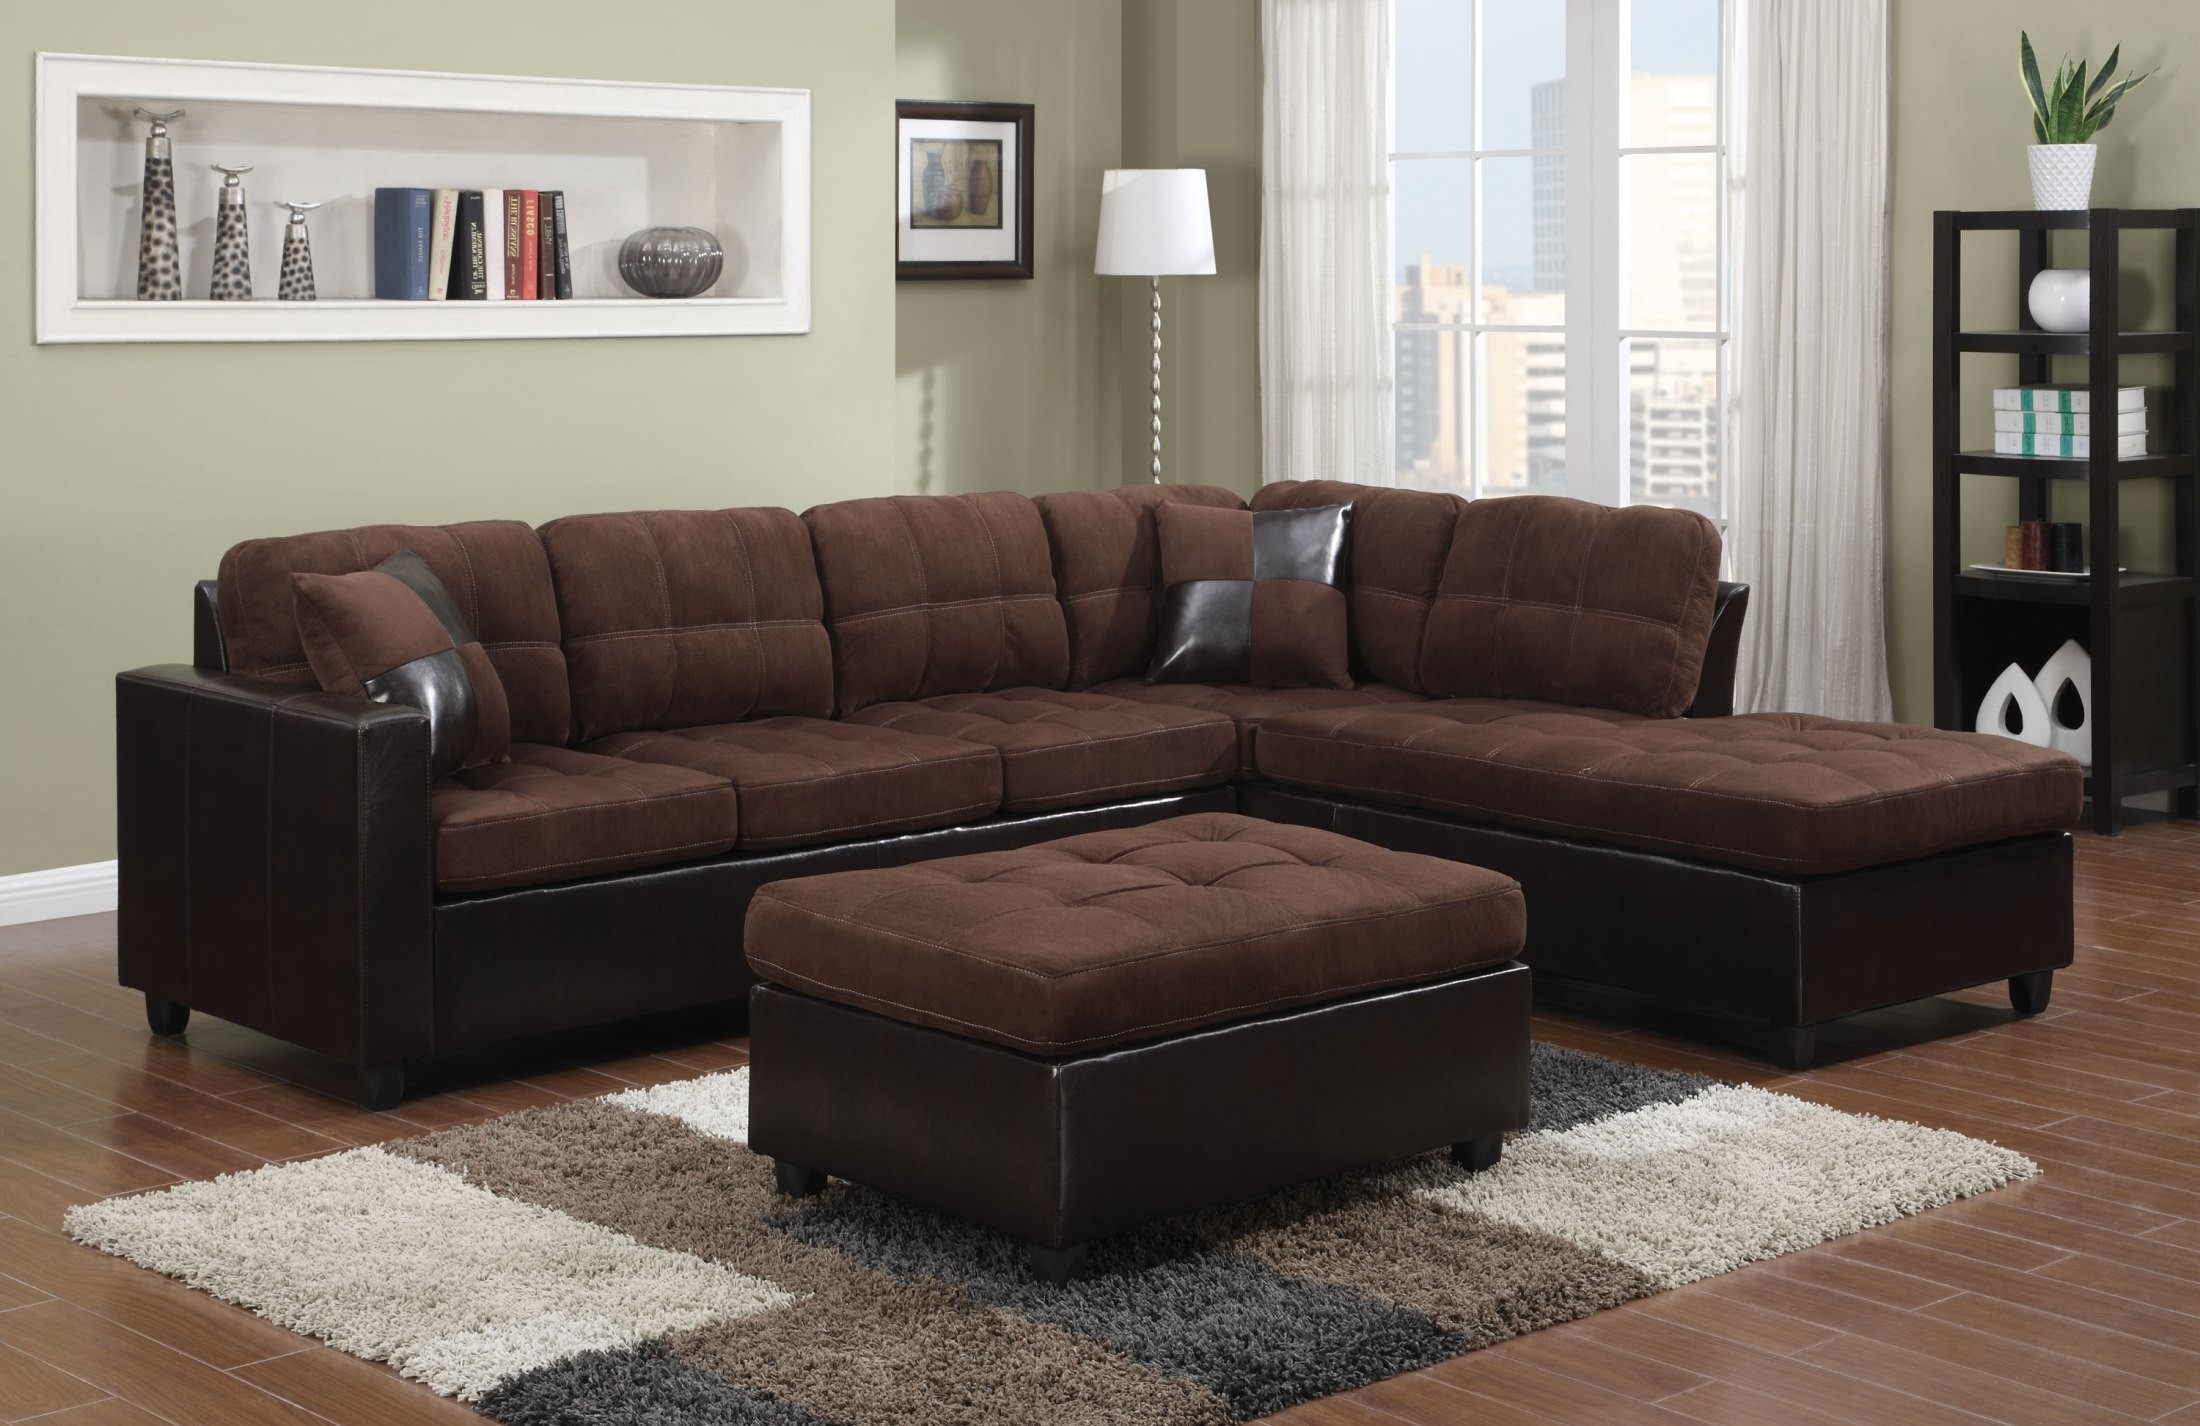 chocolate brown leather sectional sofa with 2 storage ottomans murphy bed toronto mallory from coaster 505655